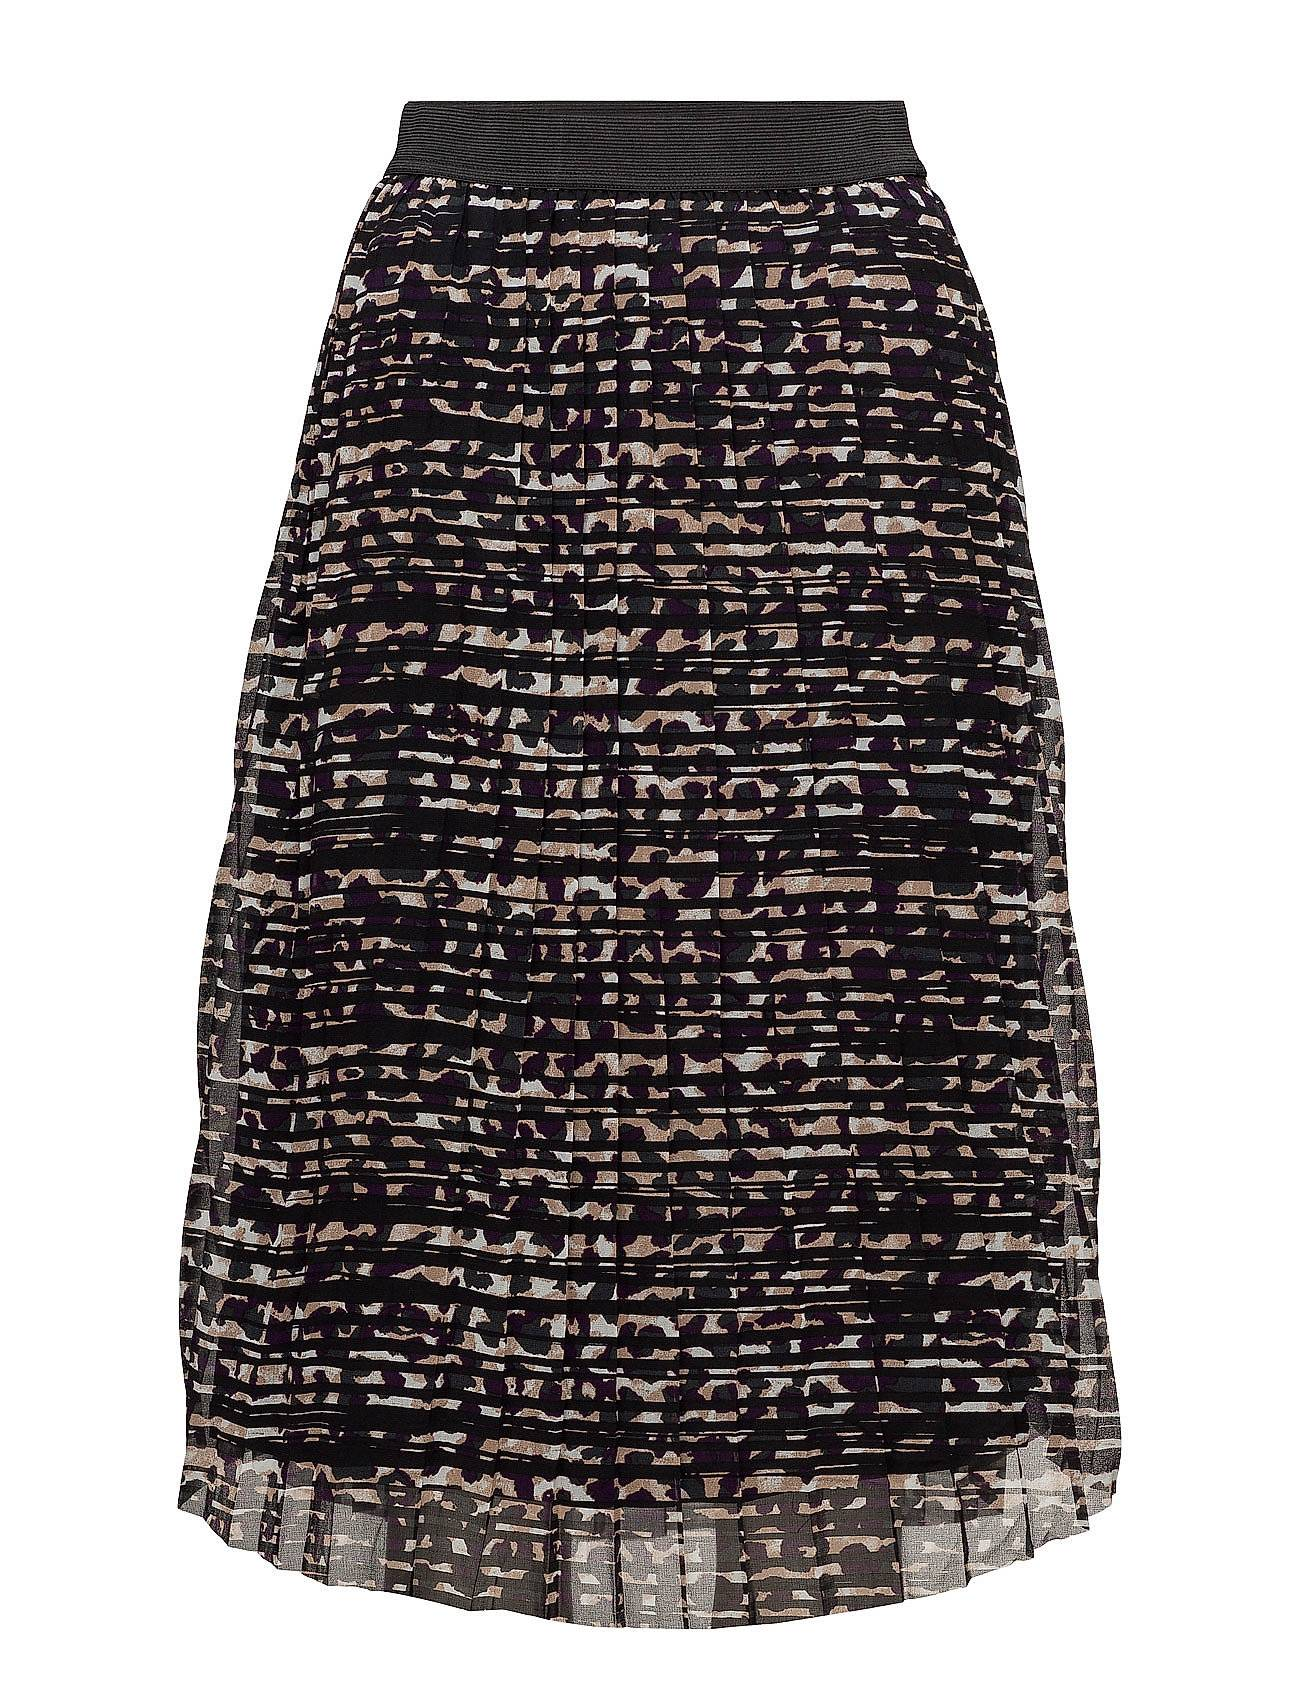 Saint Tropez Black Panter Print Skirt